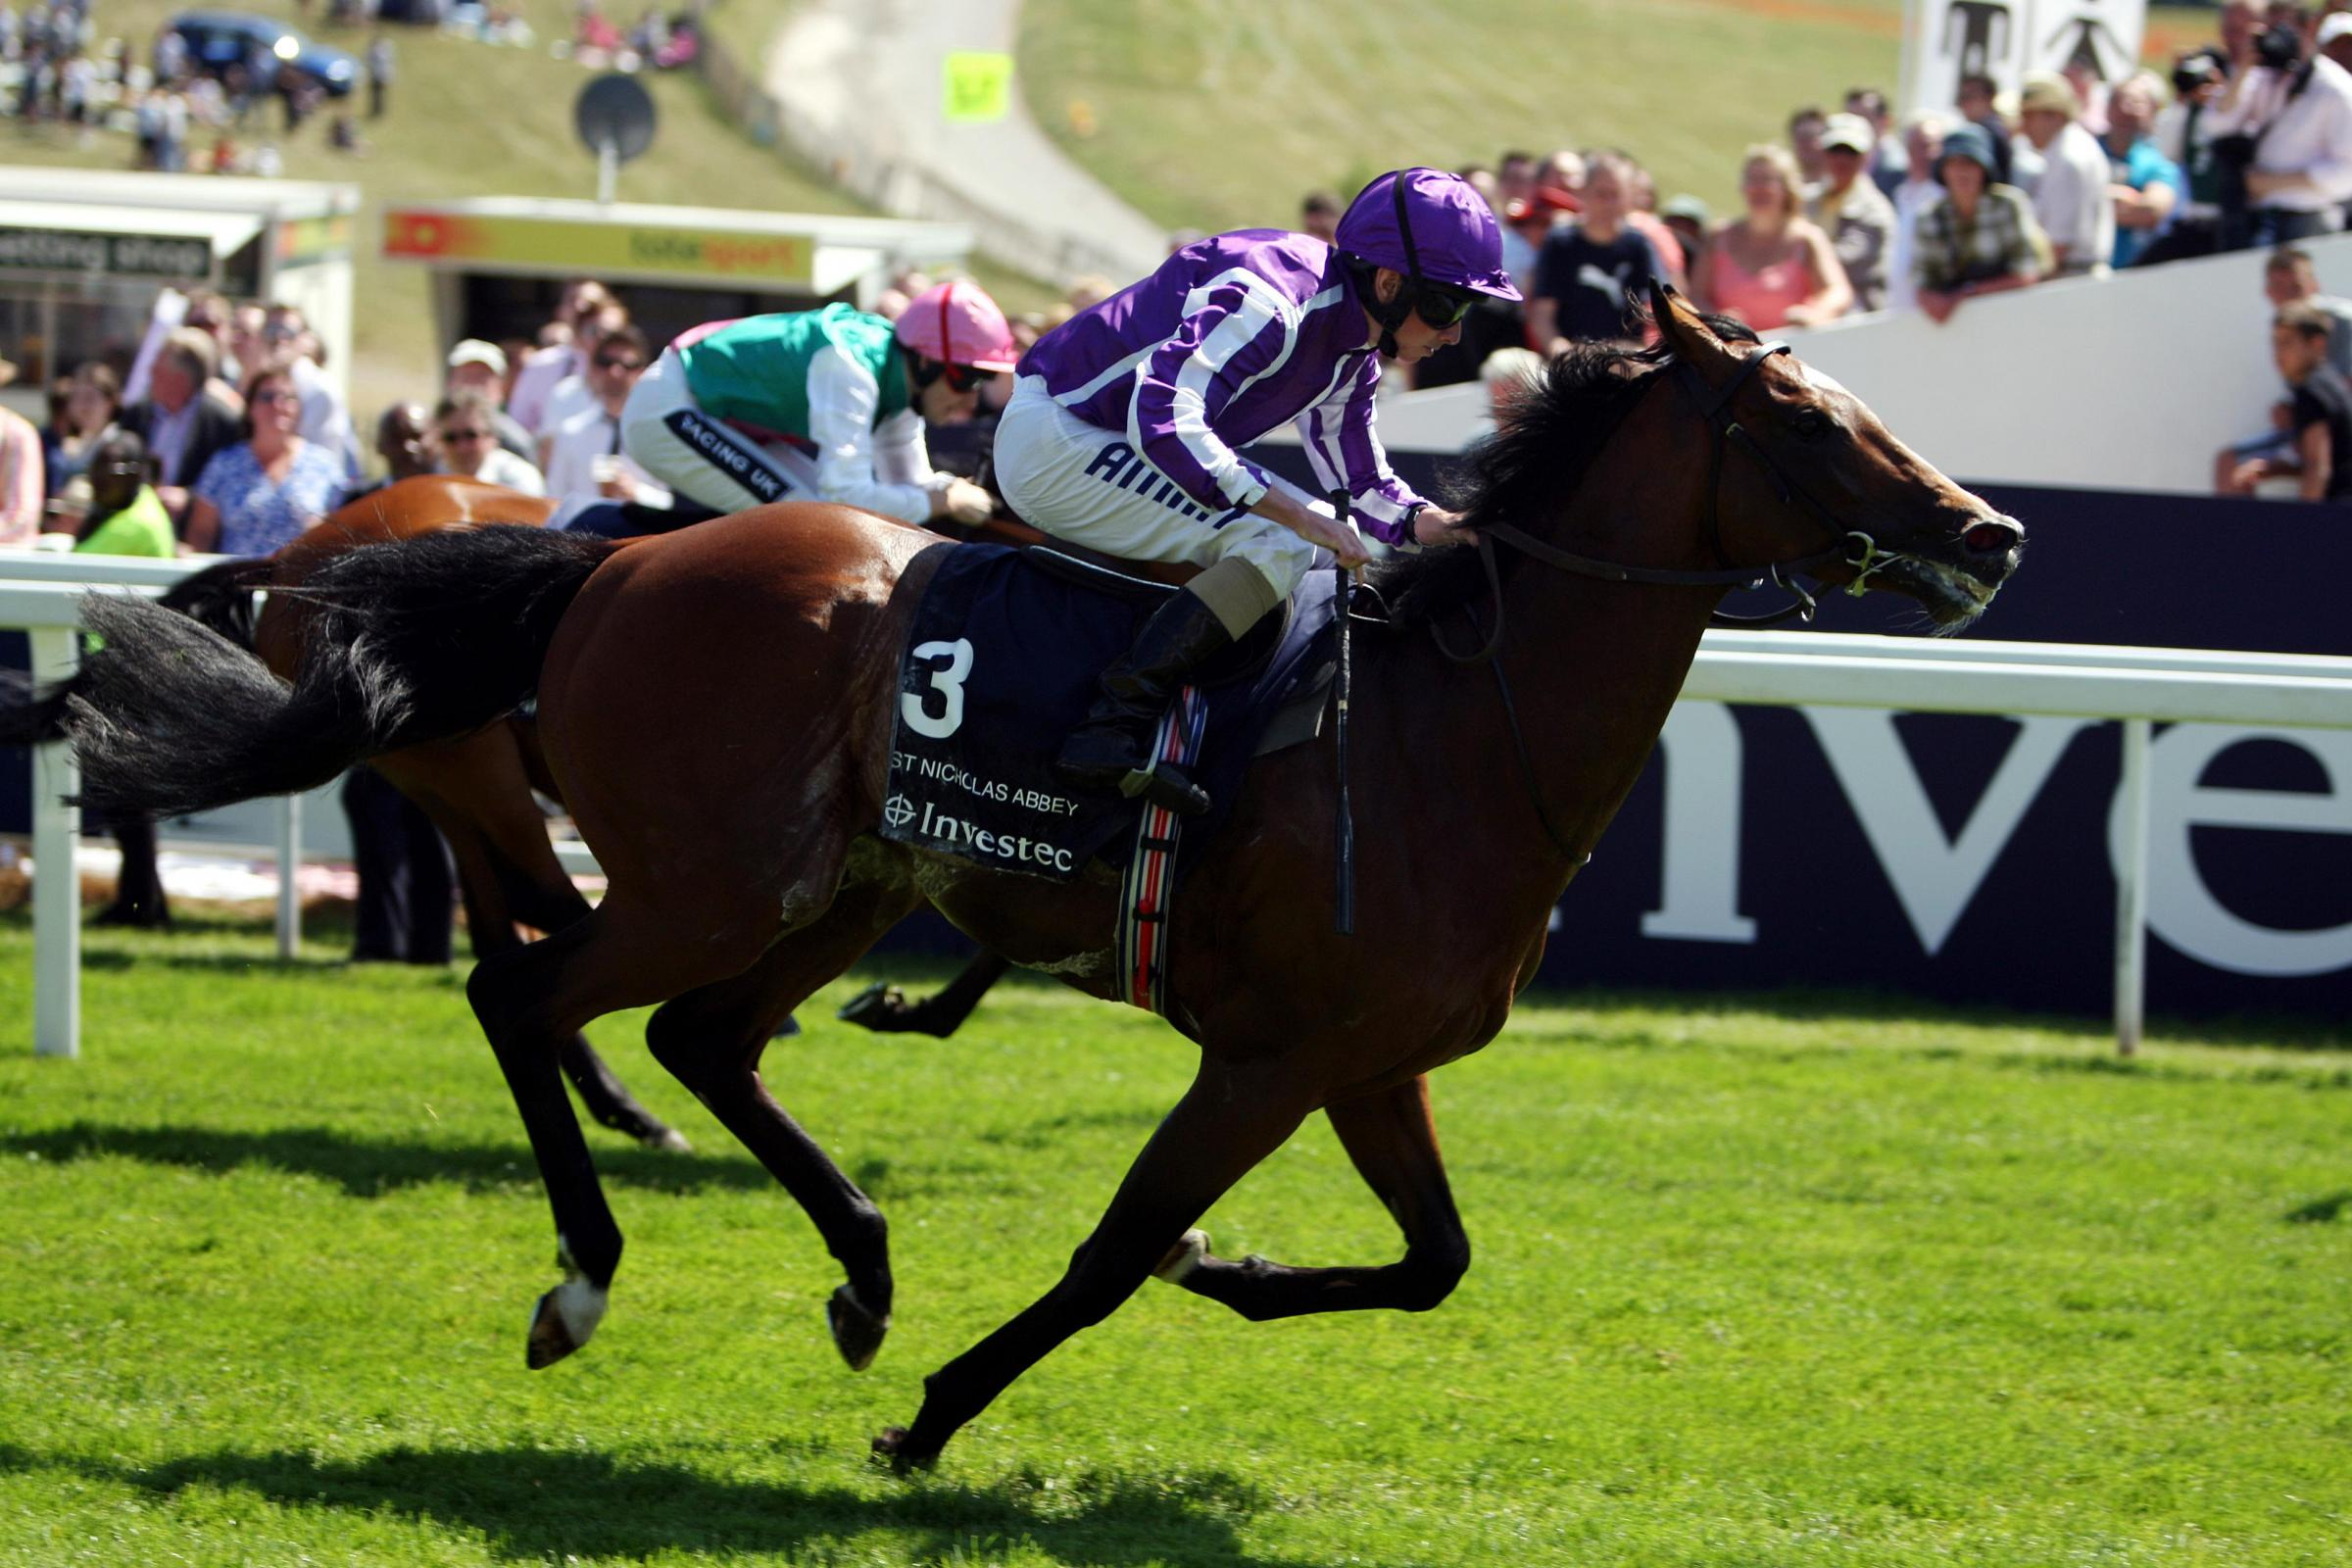 FIRST HOME: St Nicholas Abbey, winning the Investec Coronation Cup at Epsom in 2011